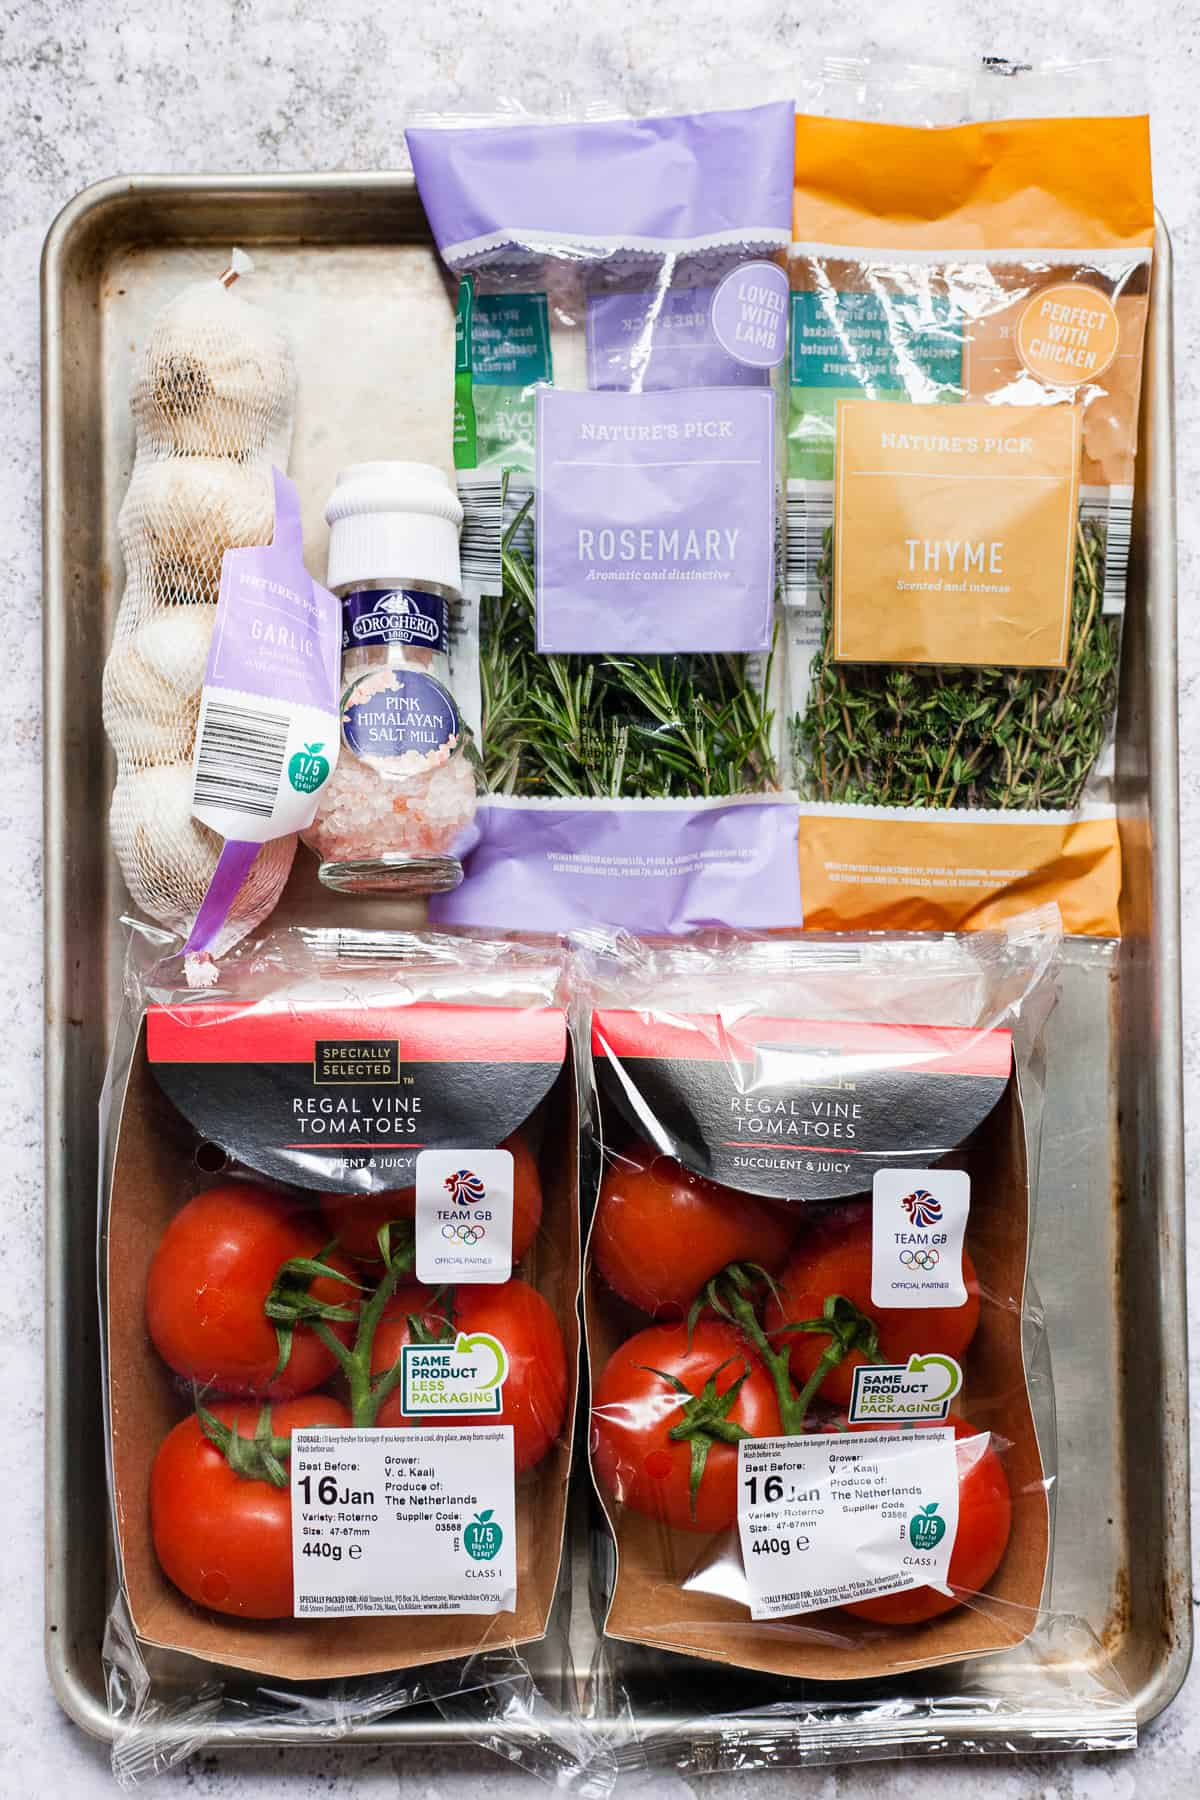 Ingredients from Aldi UK on a baking tray to make roasted tomatoes